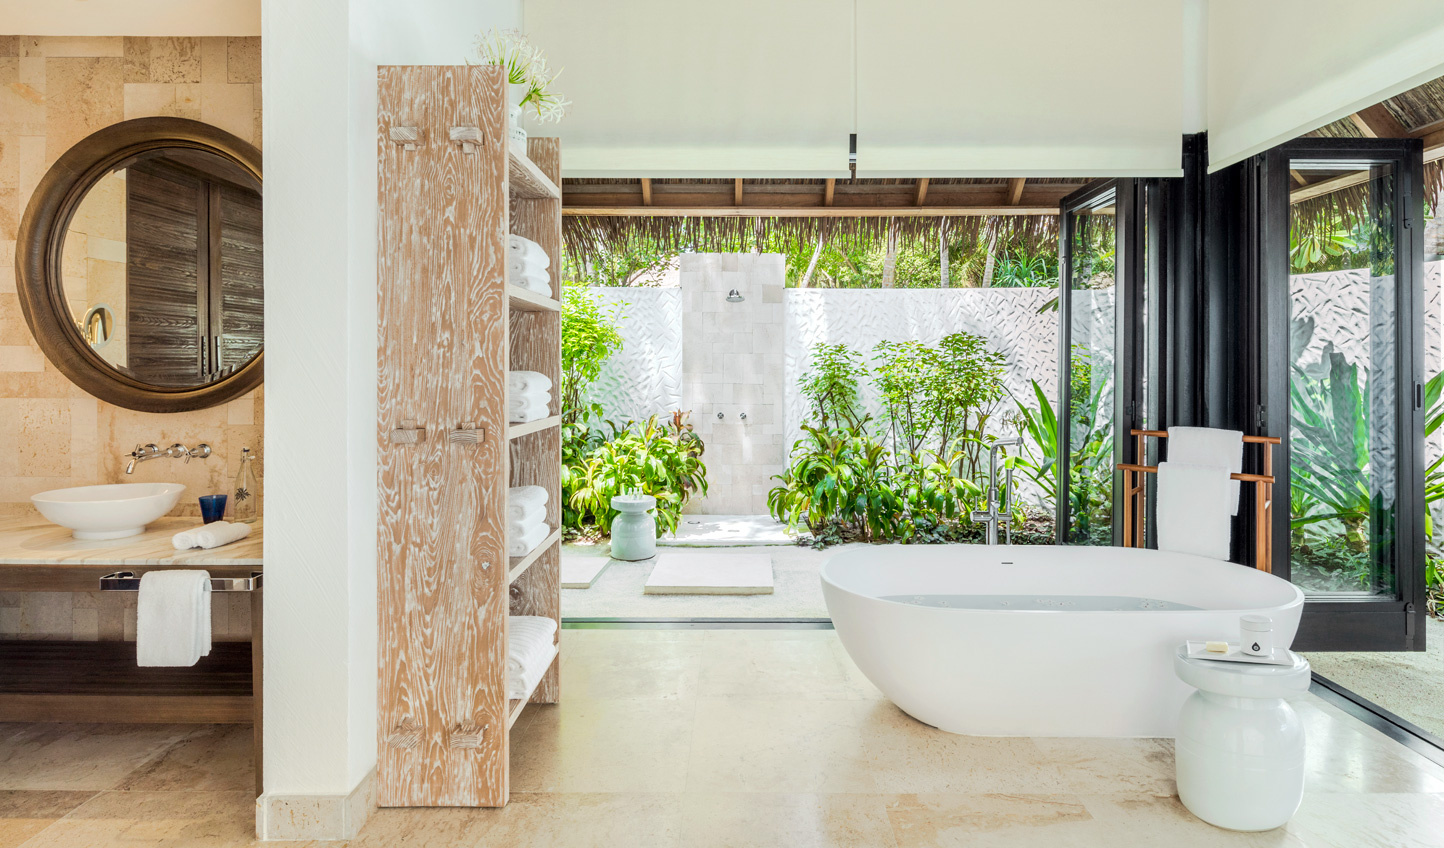 Sleek interiors are offset by wild nature